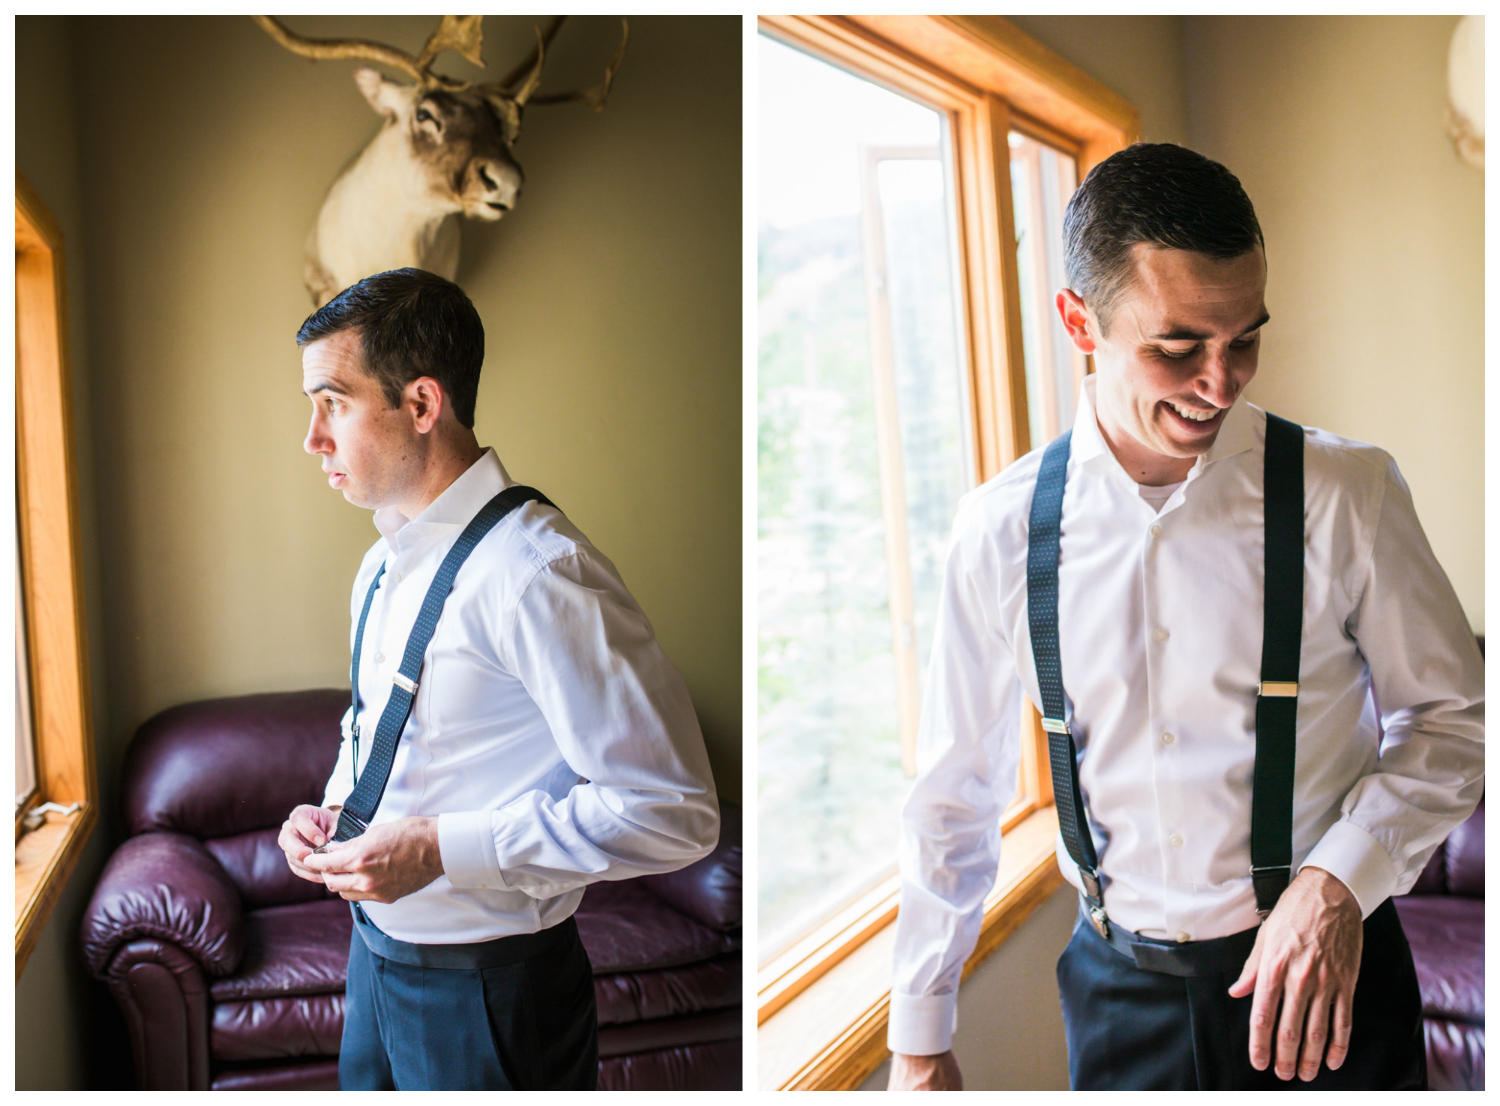 Groom getting ready for Vail Colorado Wedding photographed by JMGant Photography.